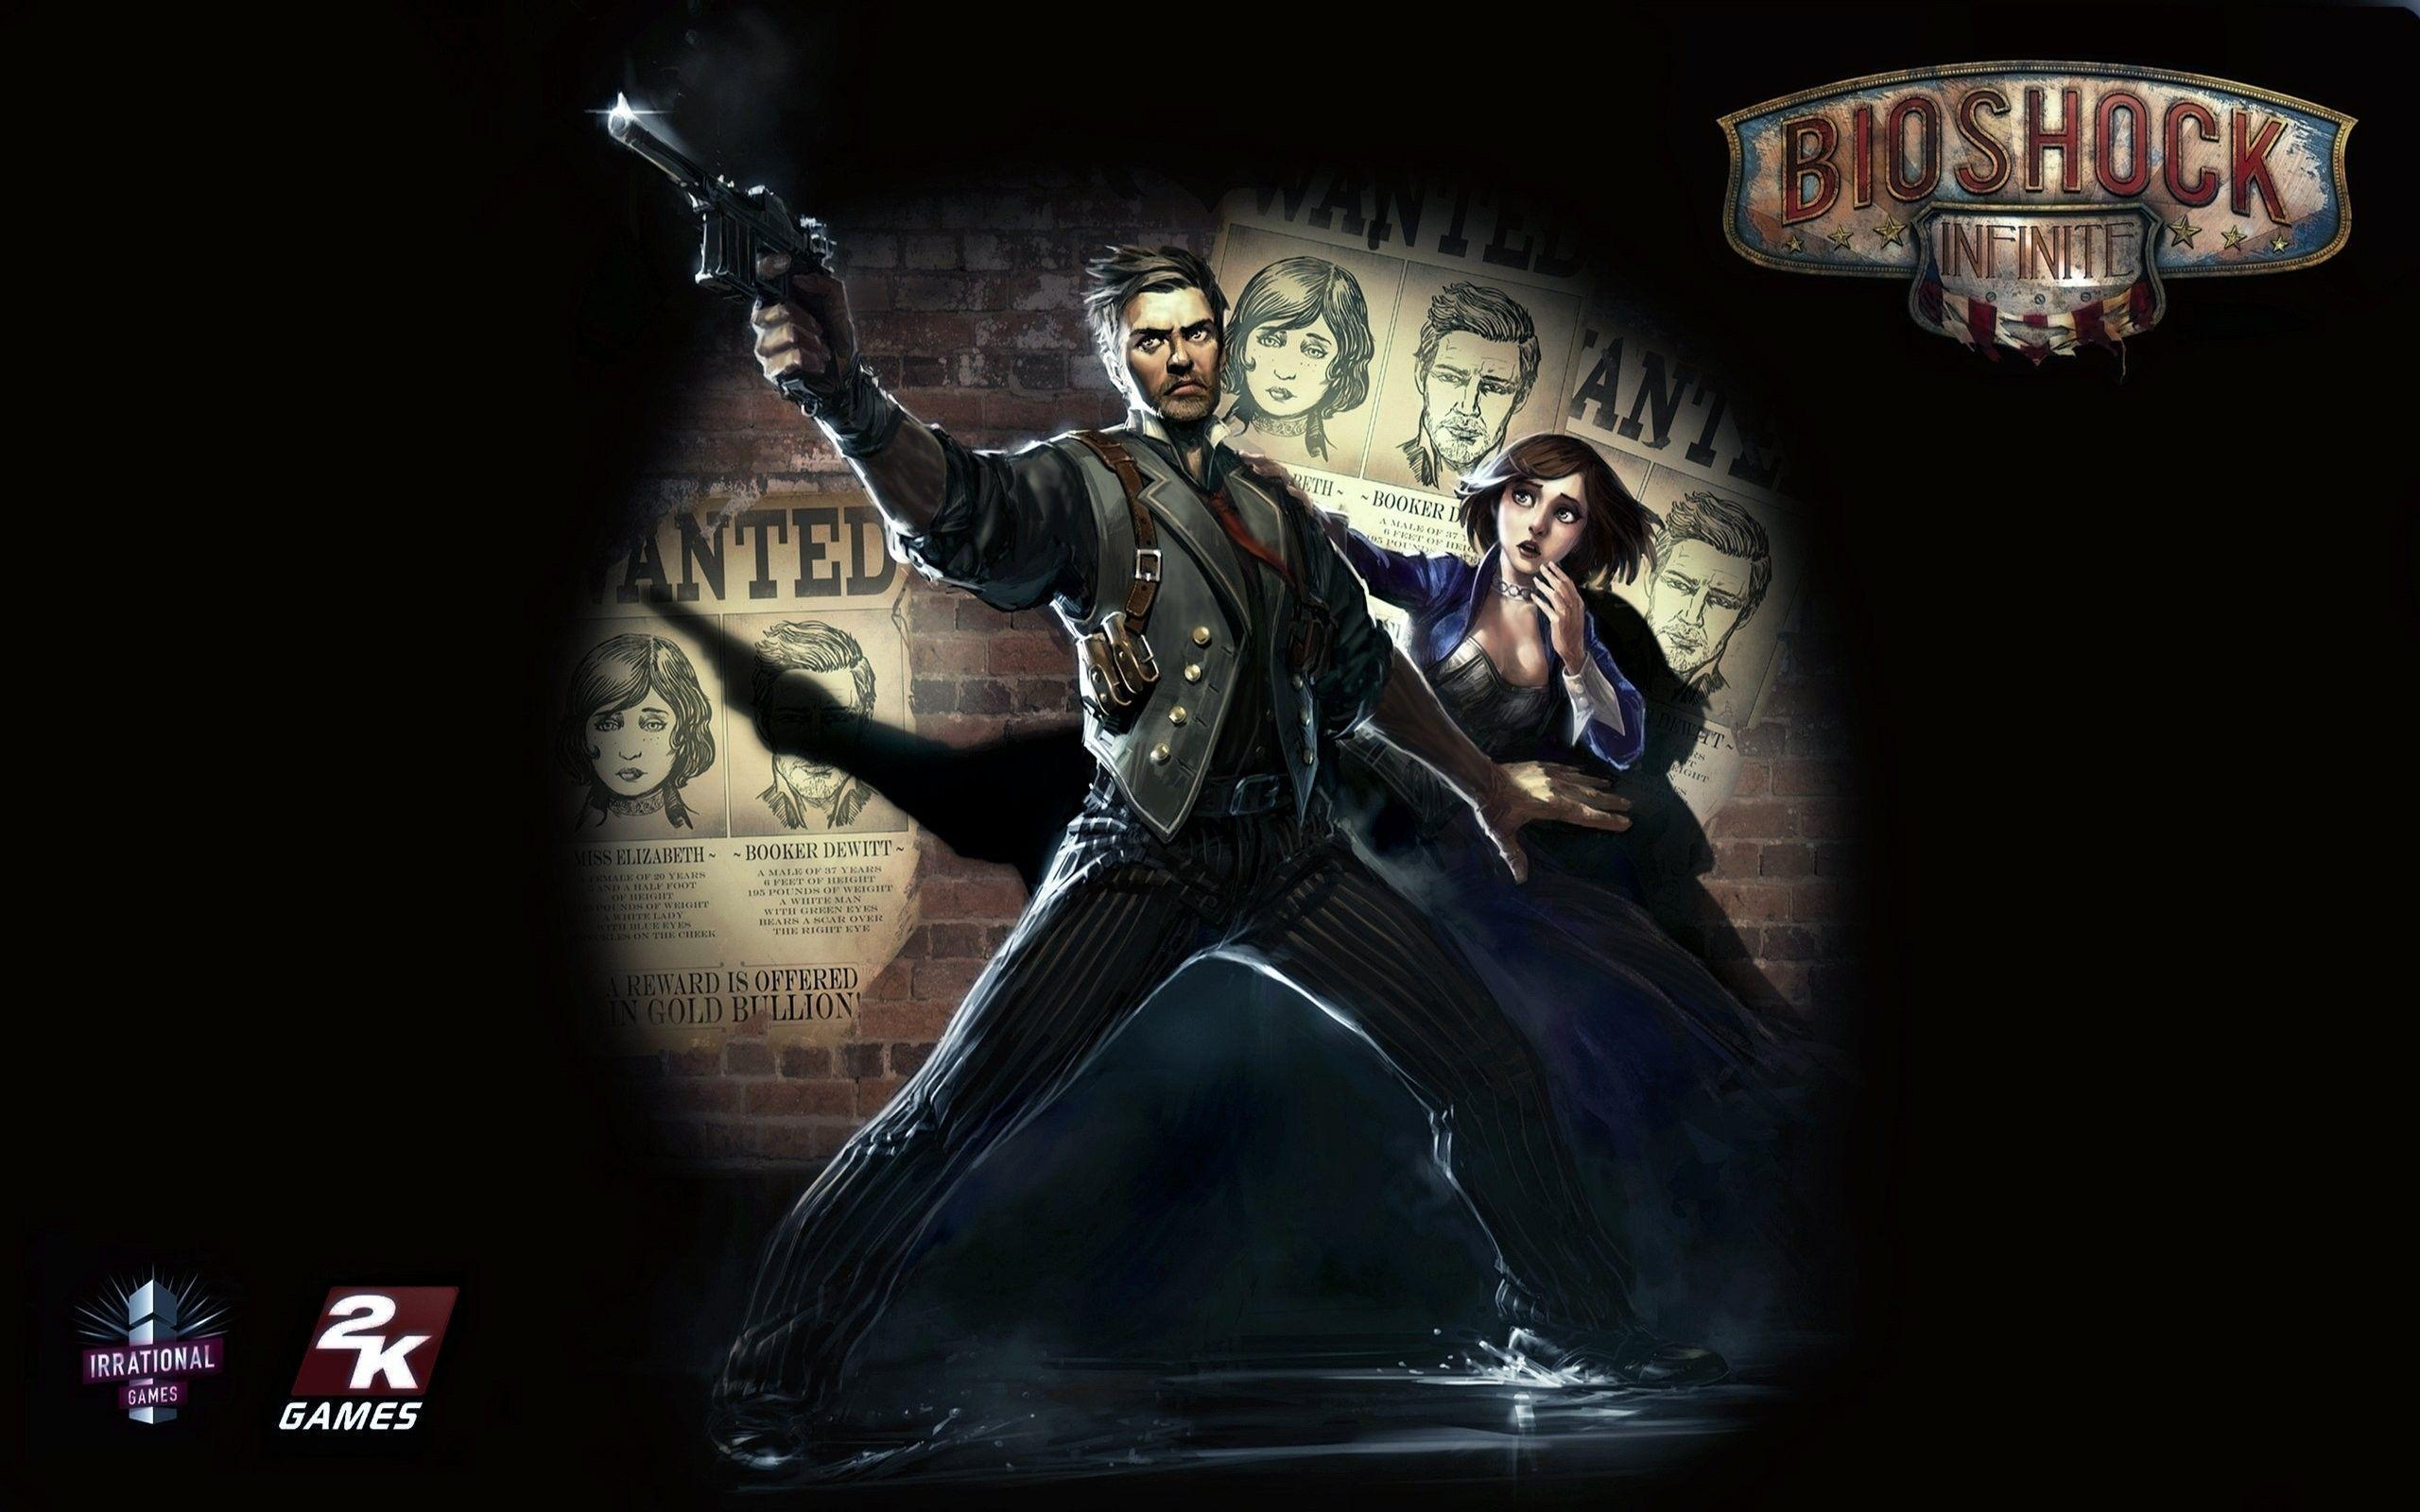 Bioshock Infinite Falling Wallpaper Bioshock Infinite Wallpapers 1920x1080 Wallpaper Cave